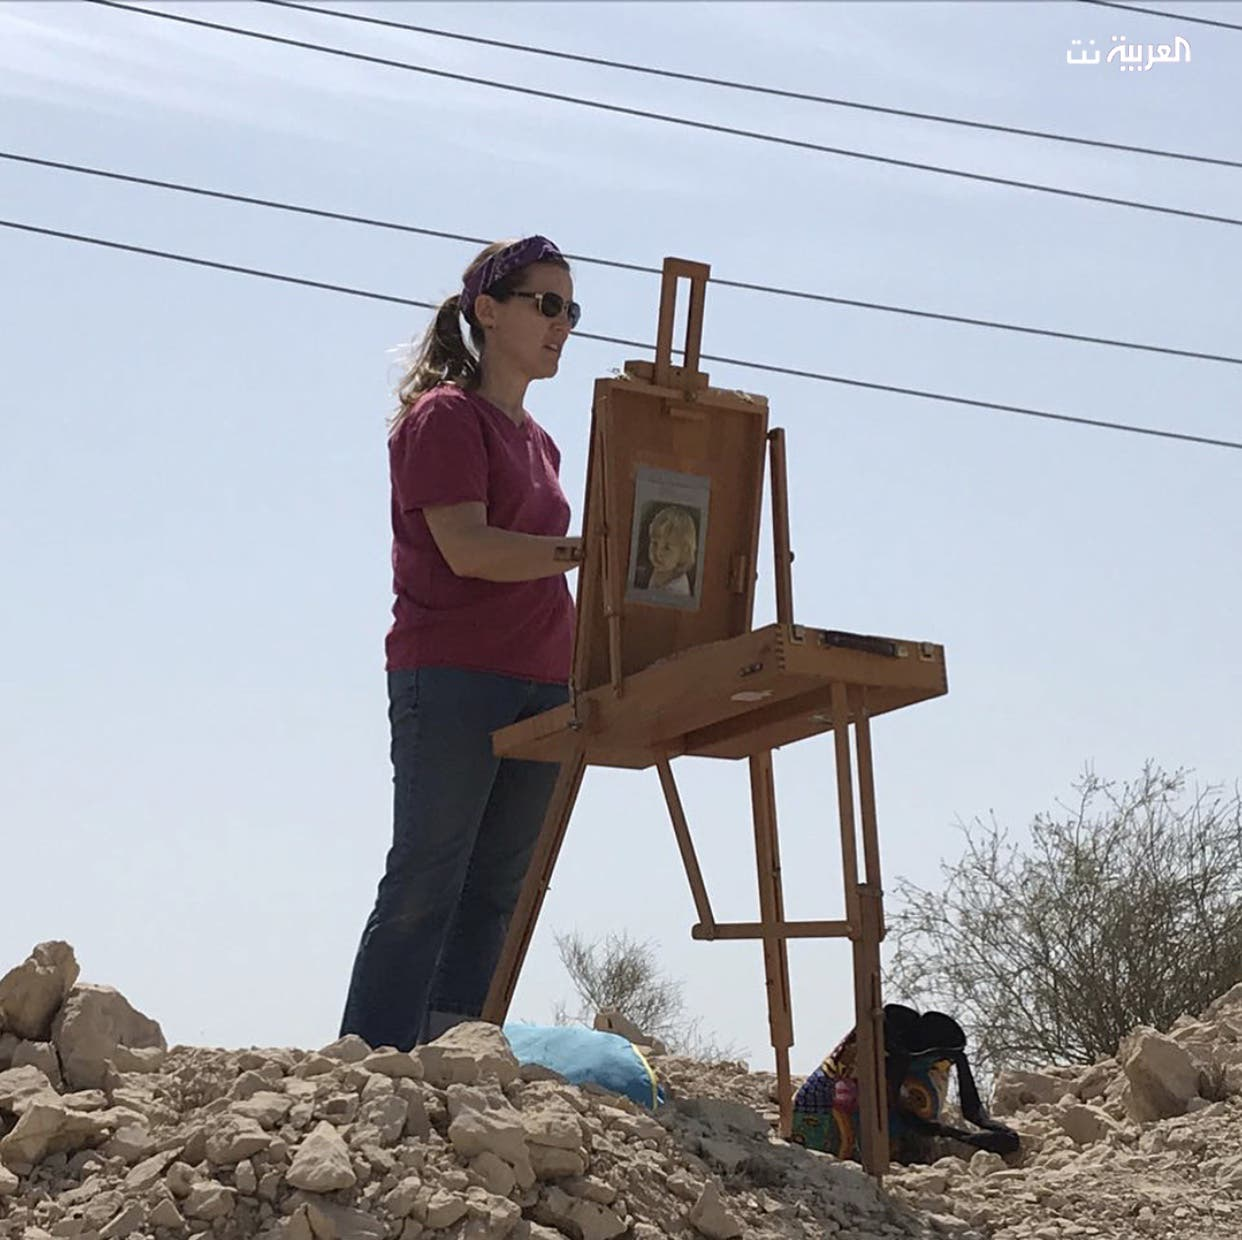 American artist give voice to Saudi deserts in her paintings